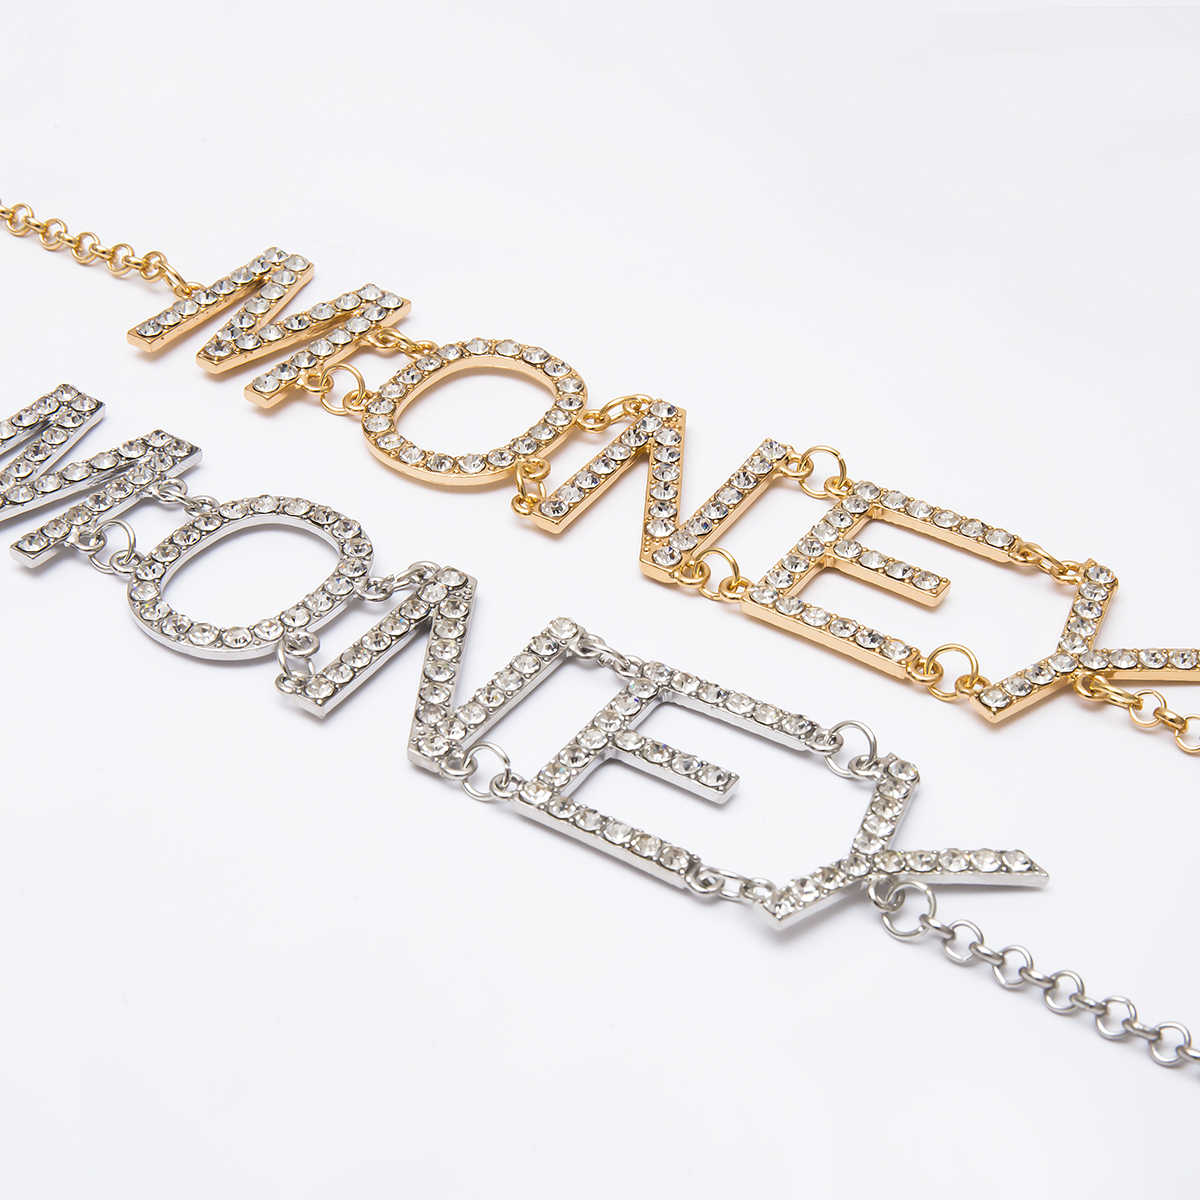 IngeSight.Z Retro Gold Color Multi Layered Crystal Letter MONEY Pendant Body Chain Women Harness Waist Belly Chain Belt Jewelry